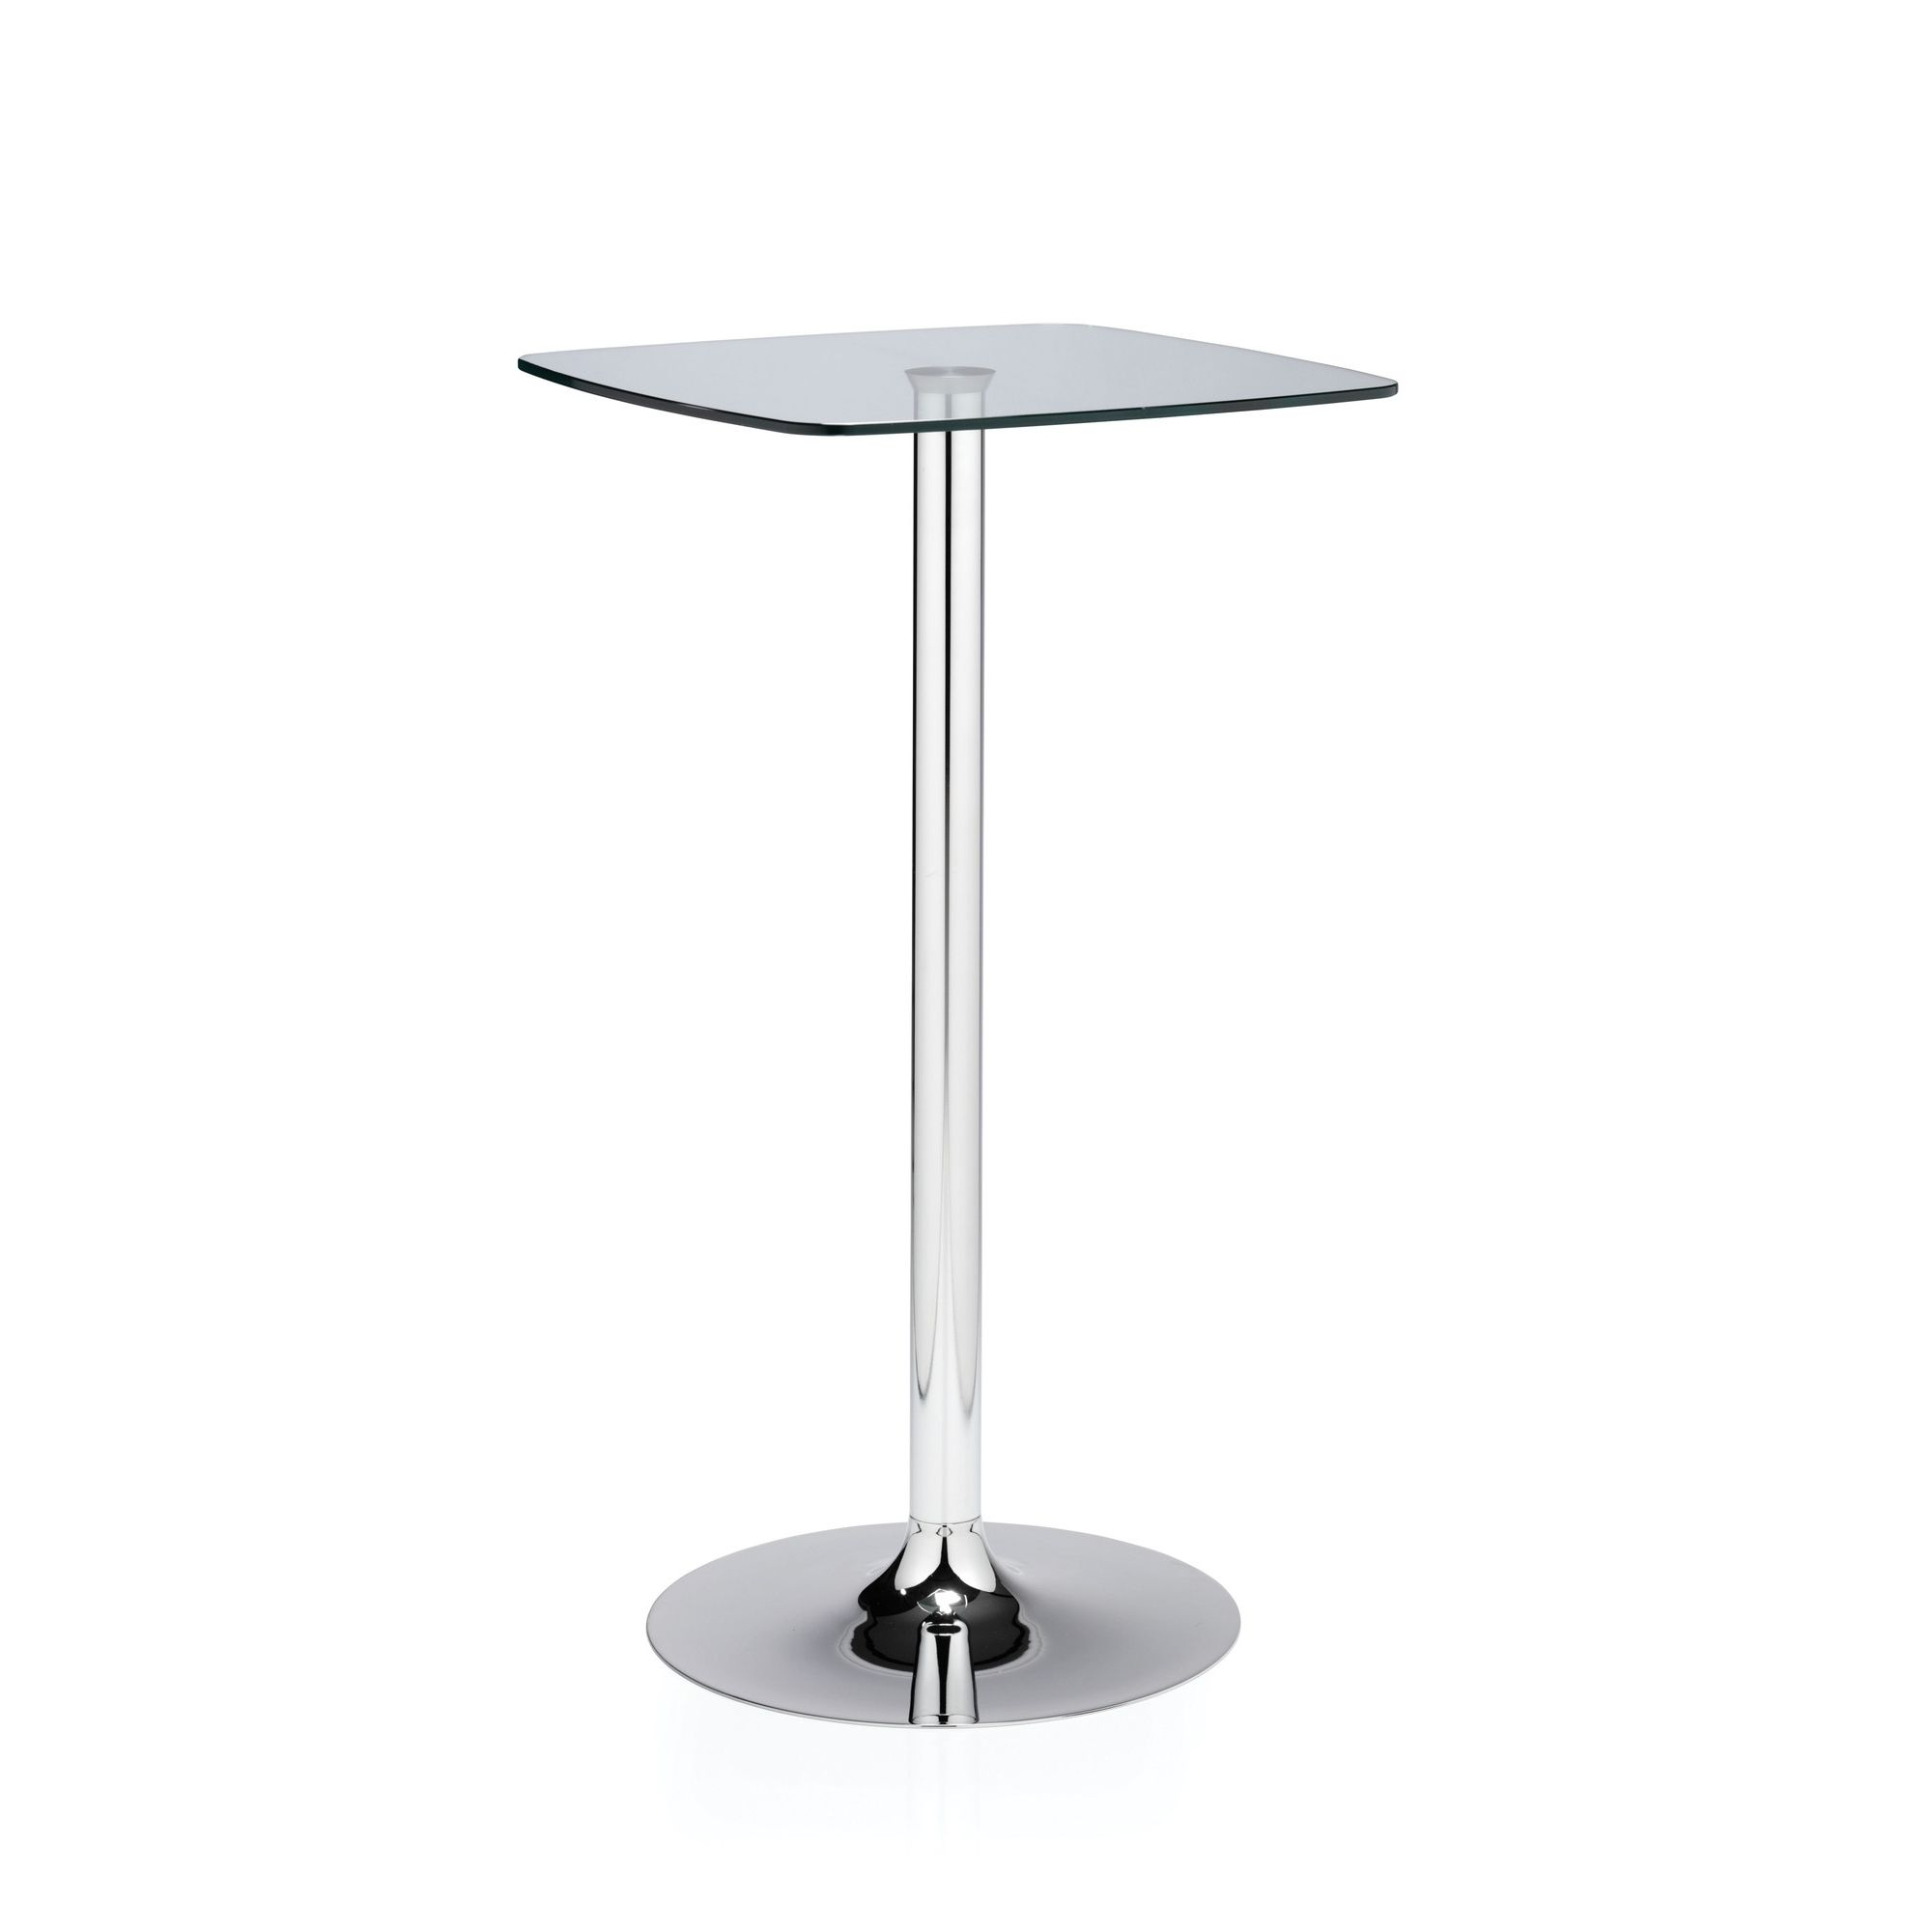 Ocee Design Venalo Trumet Base Poseur Table at Tesco Direct